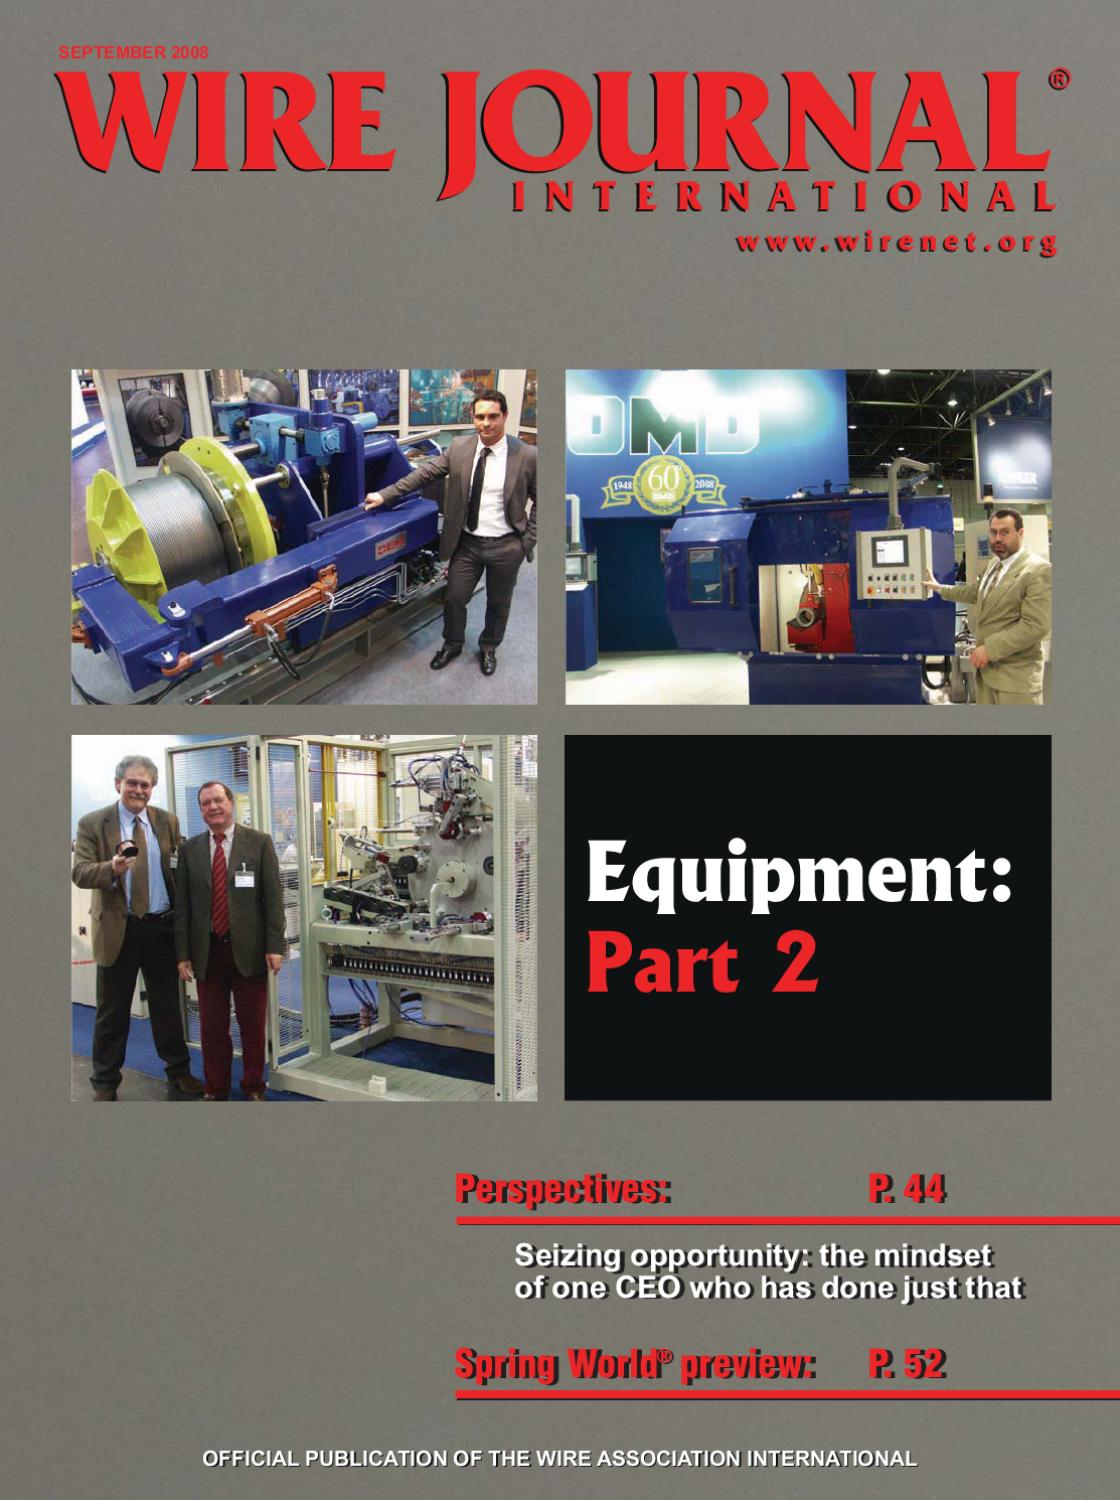 Equipment: Part 2 by Wire Journal International, Inc. - issuu